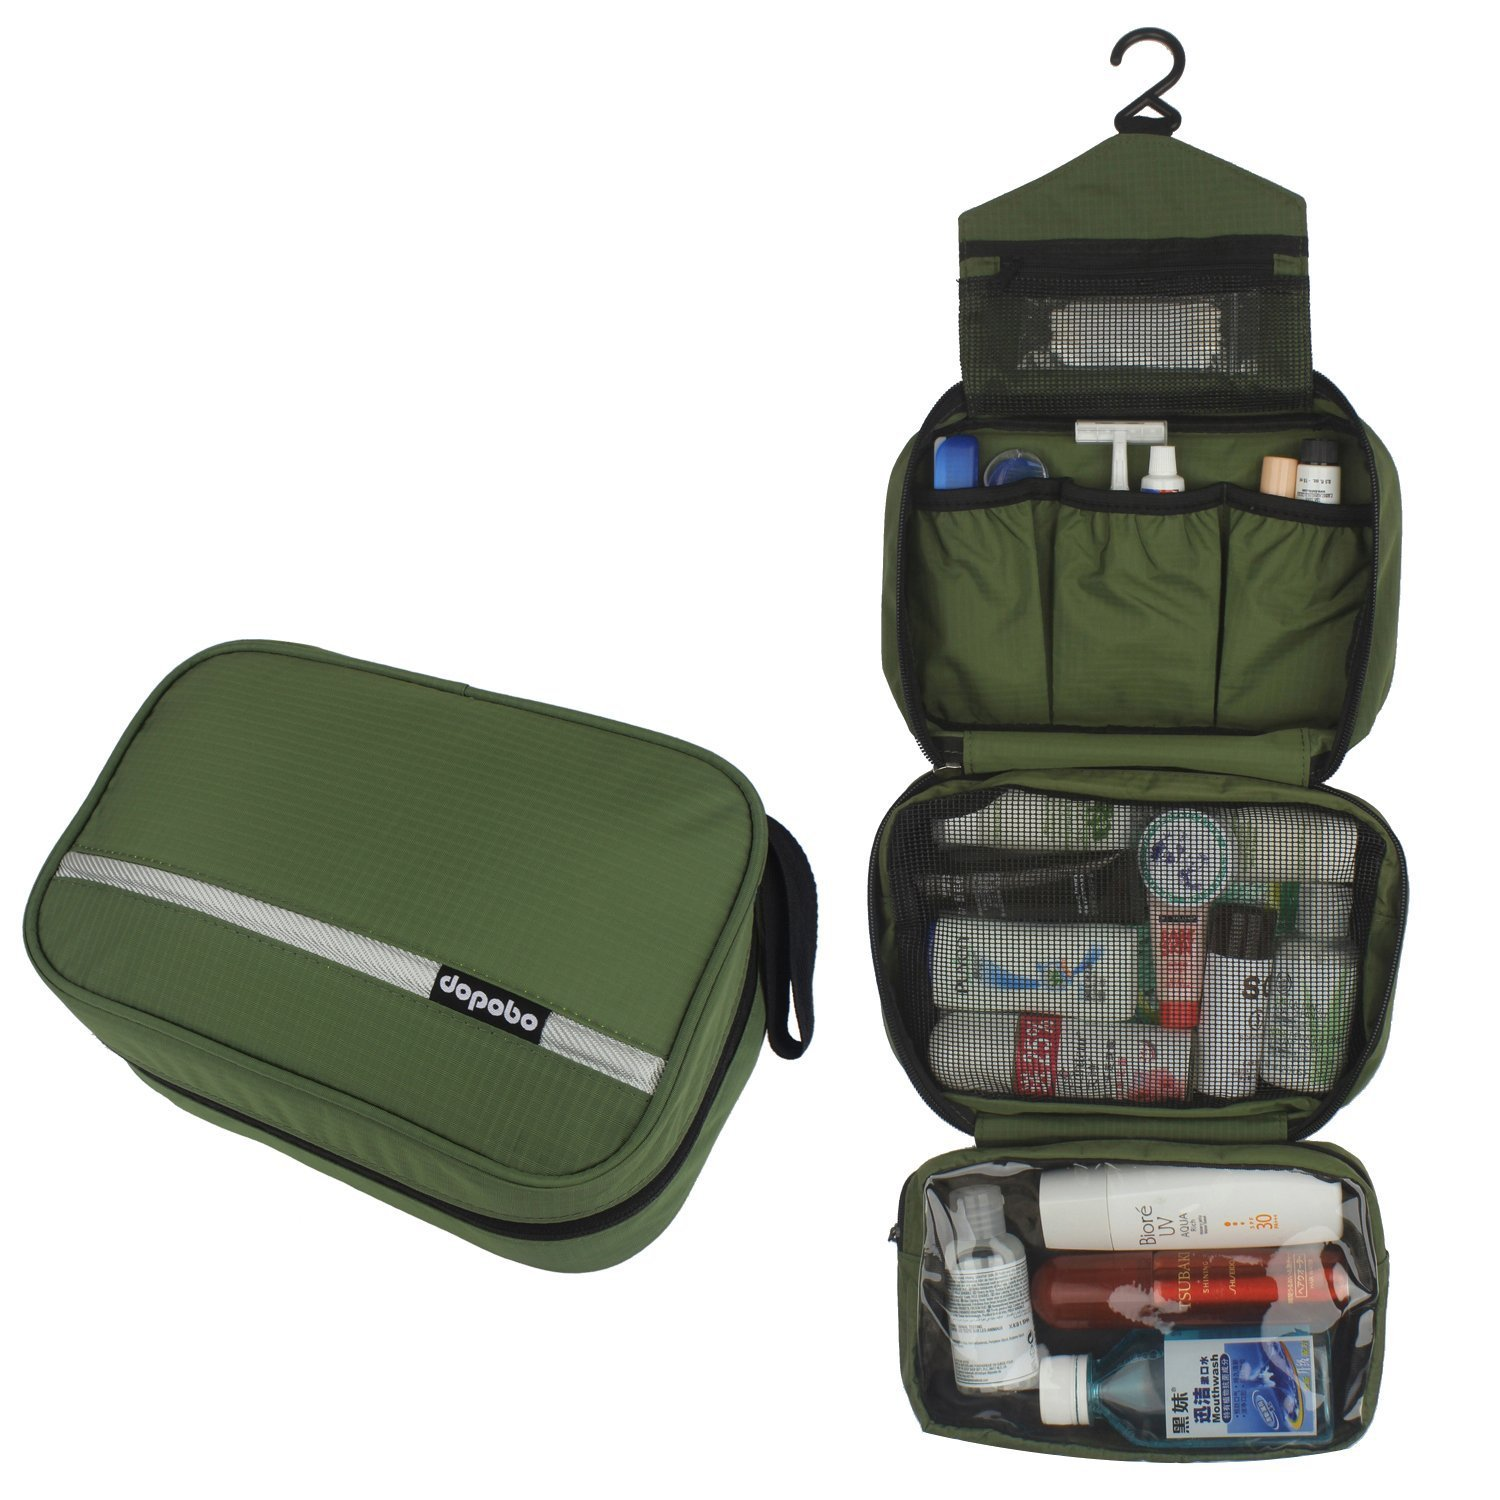 Dopobo Travelling Toiletry Bag Portable Hanging Water-Resistant Wash Bag for Travelling, Business Trip, Camping (army green) by Dopobo (Image #1)